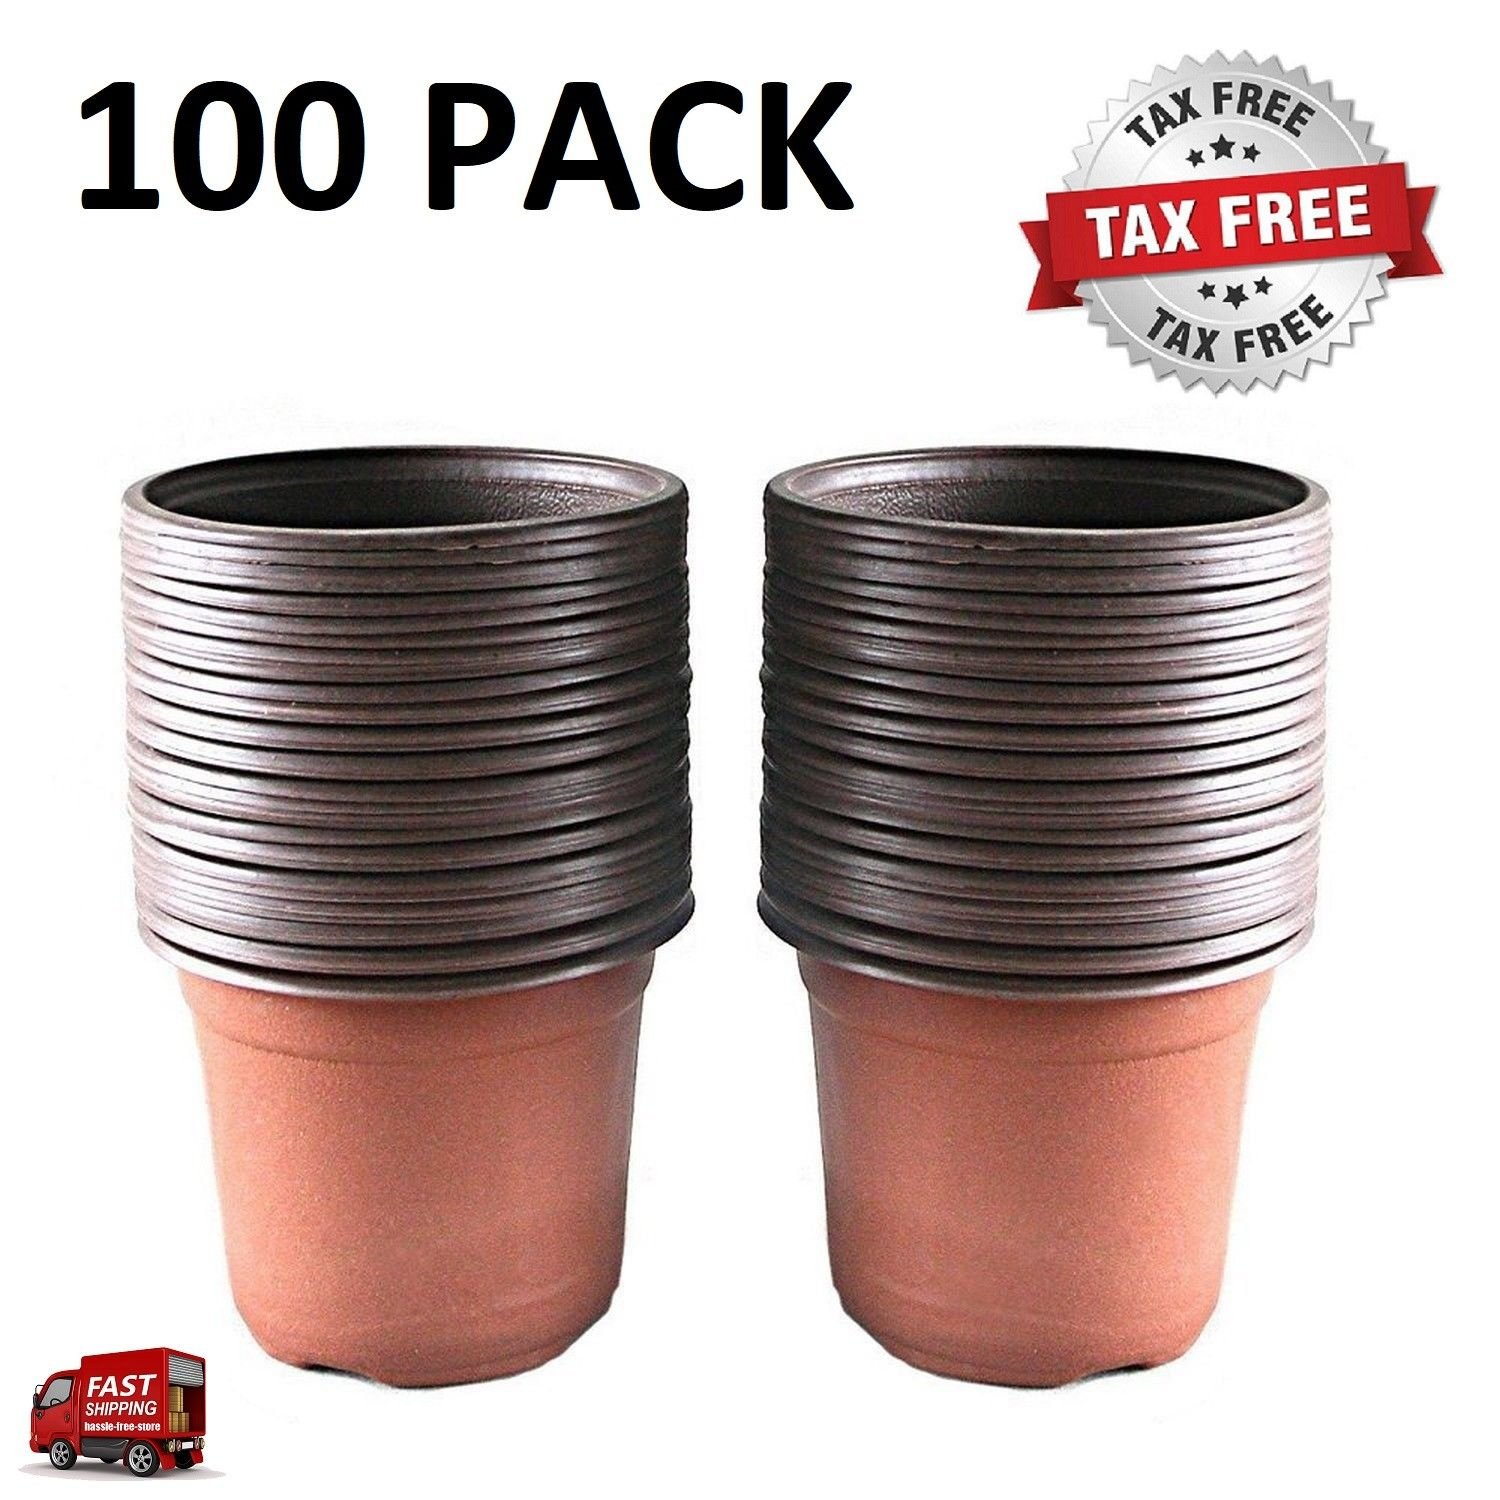 100 Pcs 4.33'' Plastic Plants Nursery Pot/Pots Seedlings Flower Plant Container Seed Starting Pots